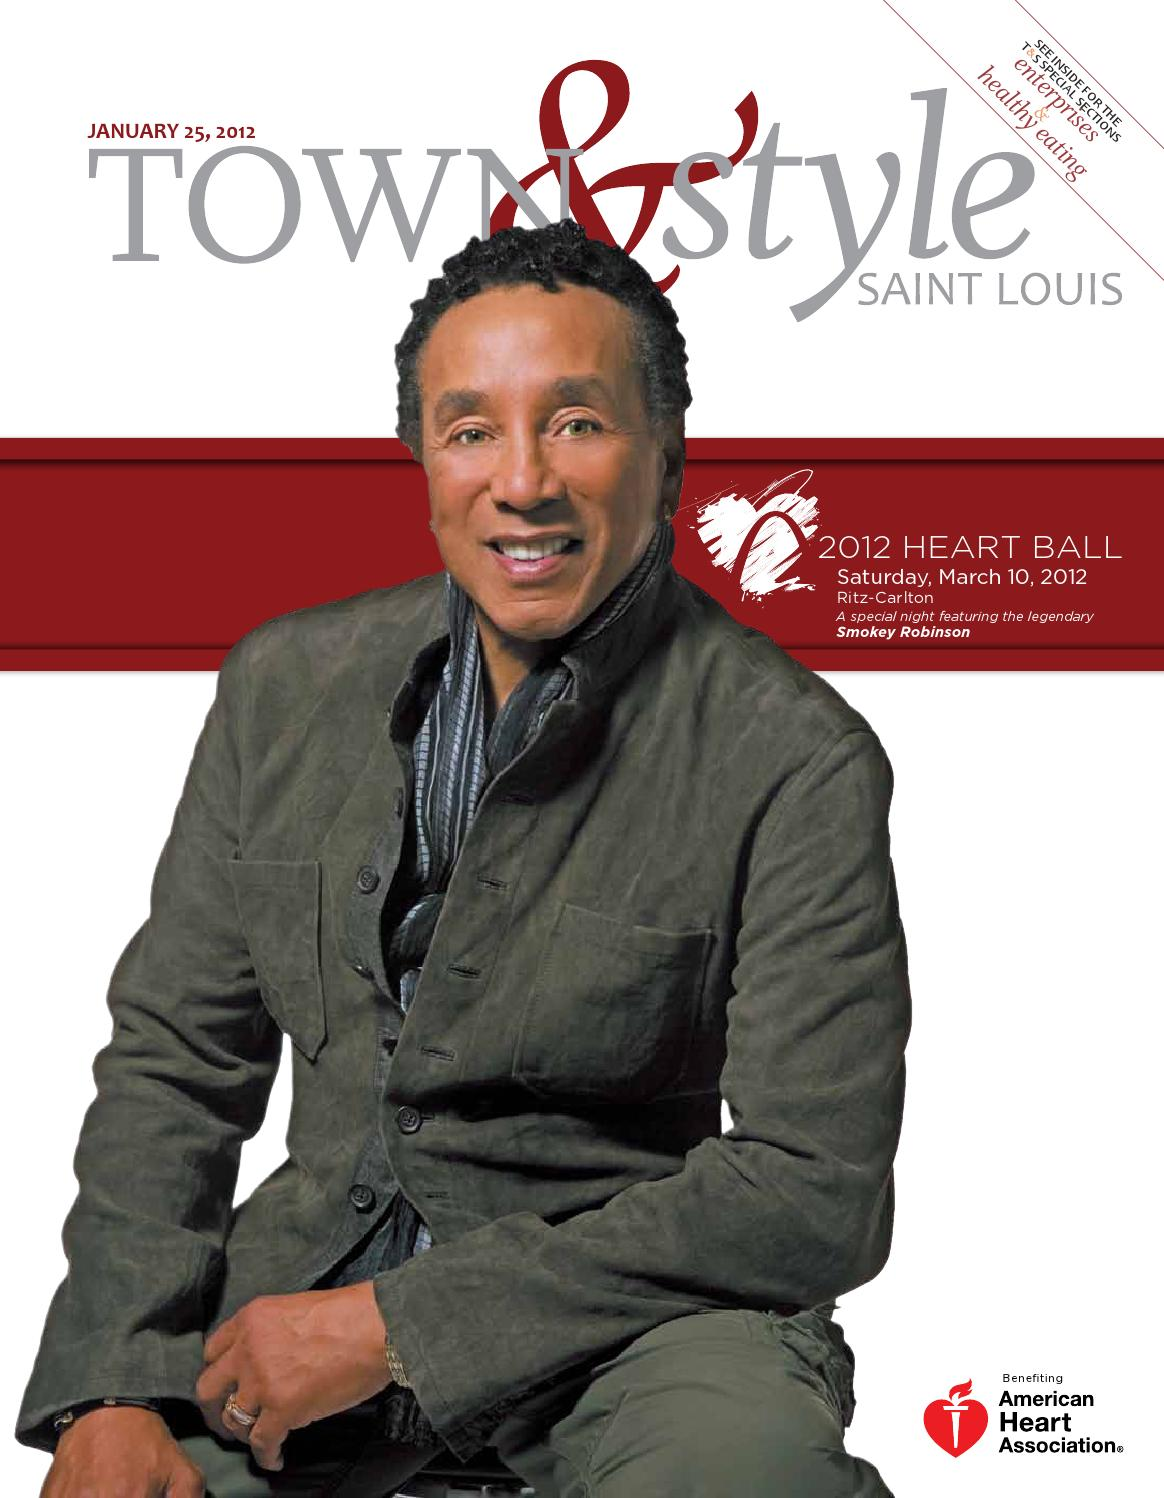 Townstyle St Louis 012512 By Town Style Issuu Carondelet Orthopaedic Surgeons Kansas City Howrah Bridge Songs Free